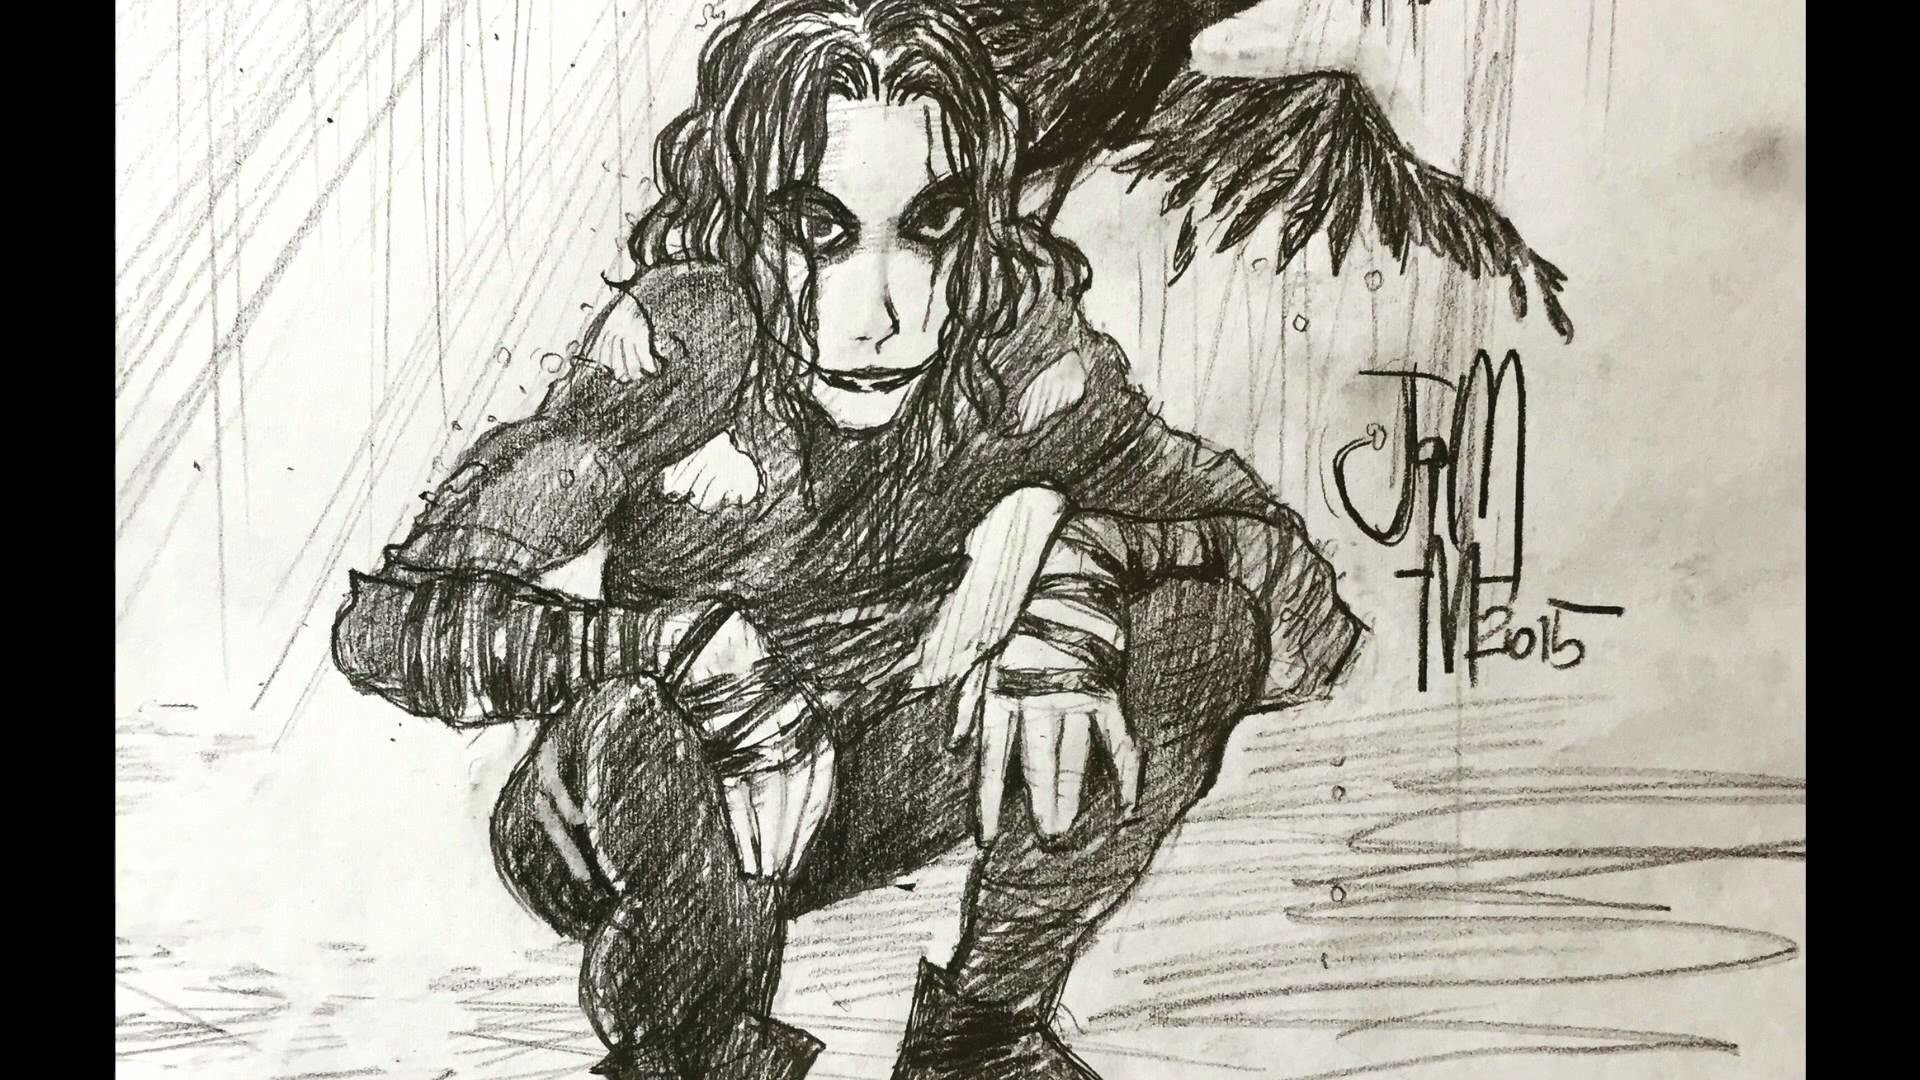 Drawing of The Crow Brandon Lee